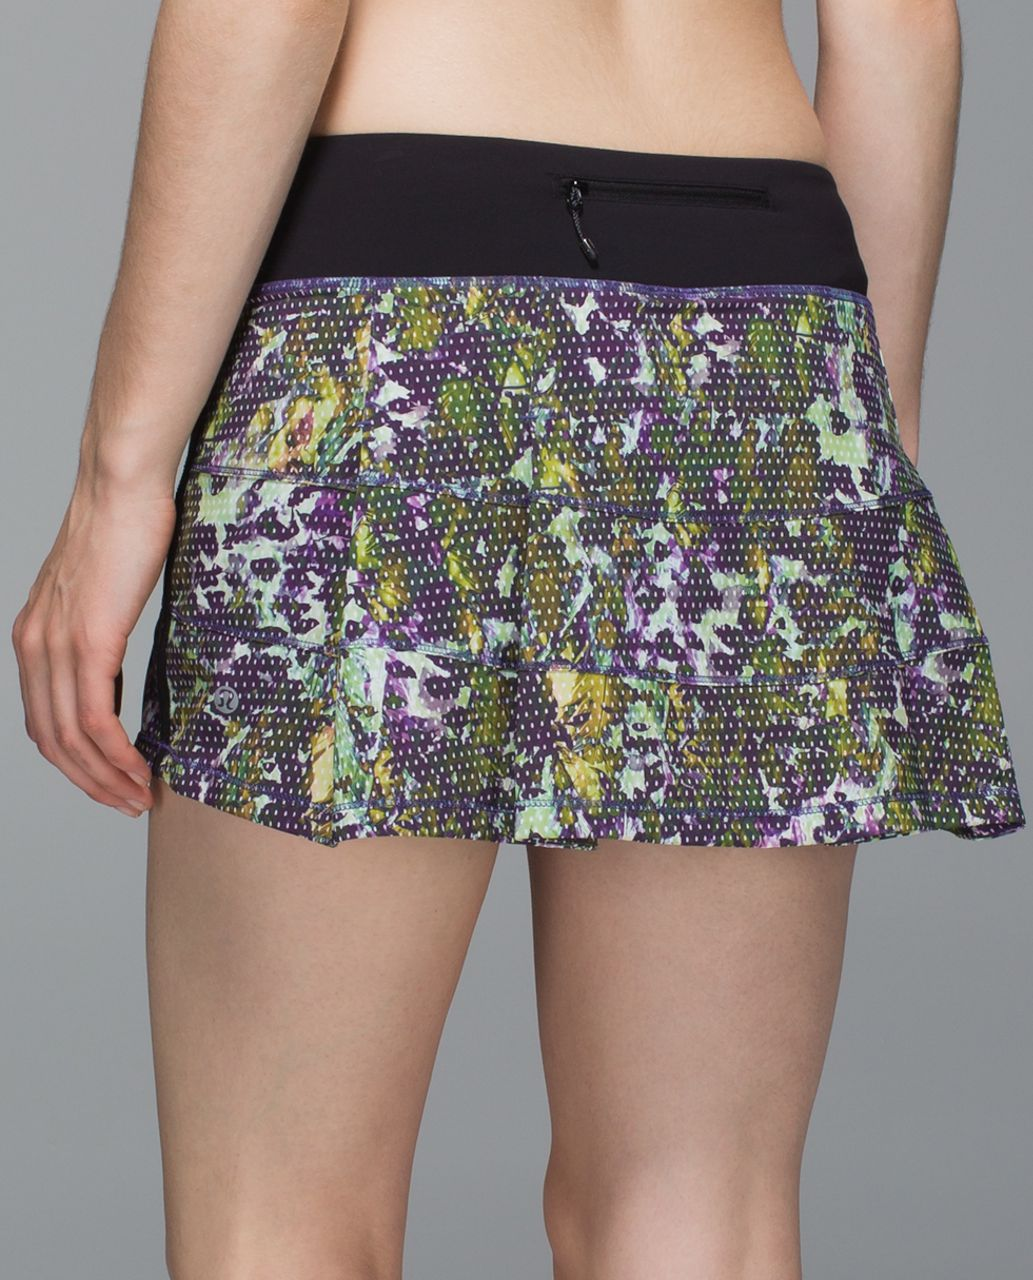 Lululemon Pace Rival Skirt II *4-way Stretch (Regular) - Floral Sport White Multi / Black